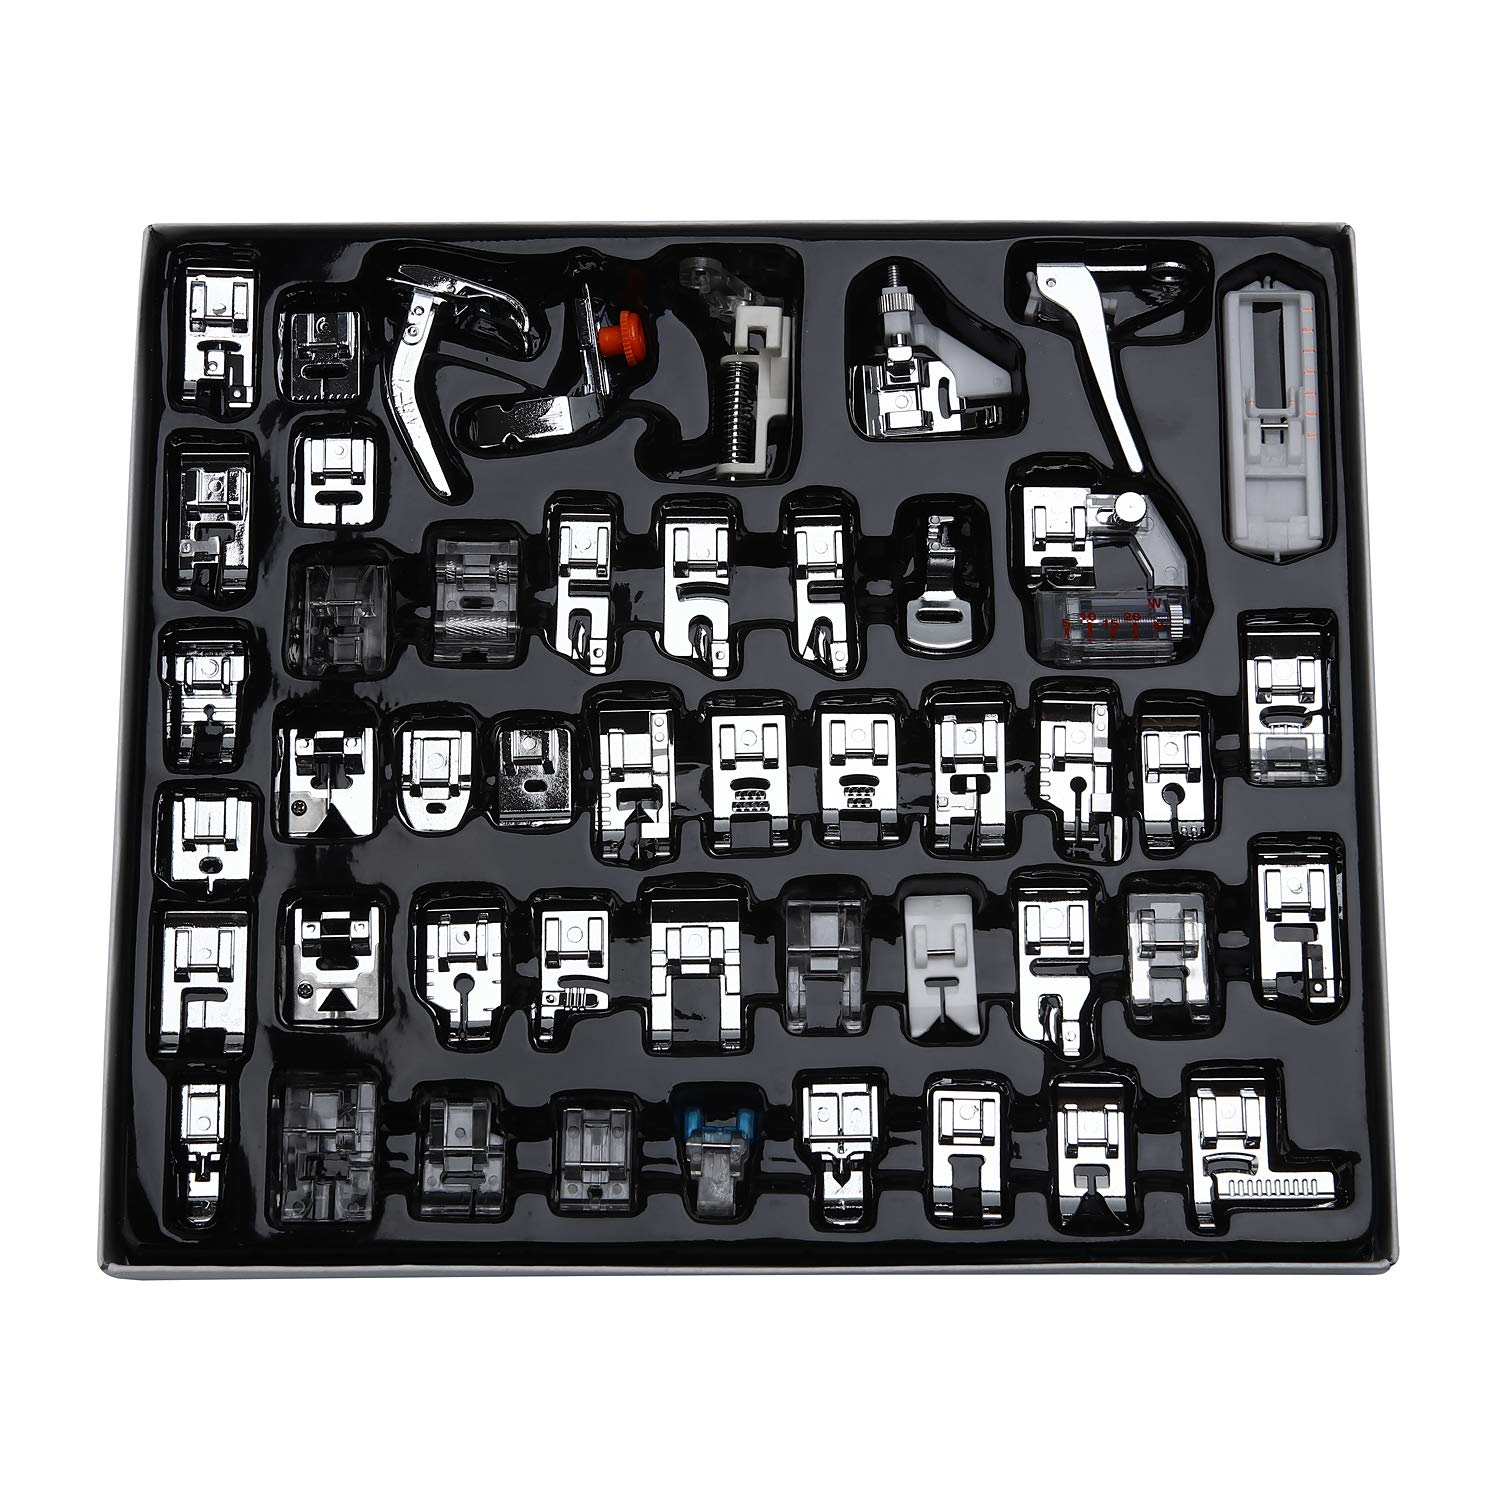 Aiskaer Professional 48pcs Sewing Machine Presser Feet Set for Brother, Babylock, Singer, Janome, Elna, Toyota, New Home, Simplicity, Kenmore, by Aiskaer